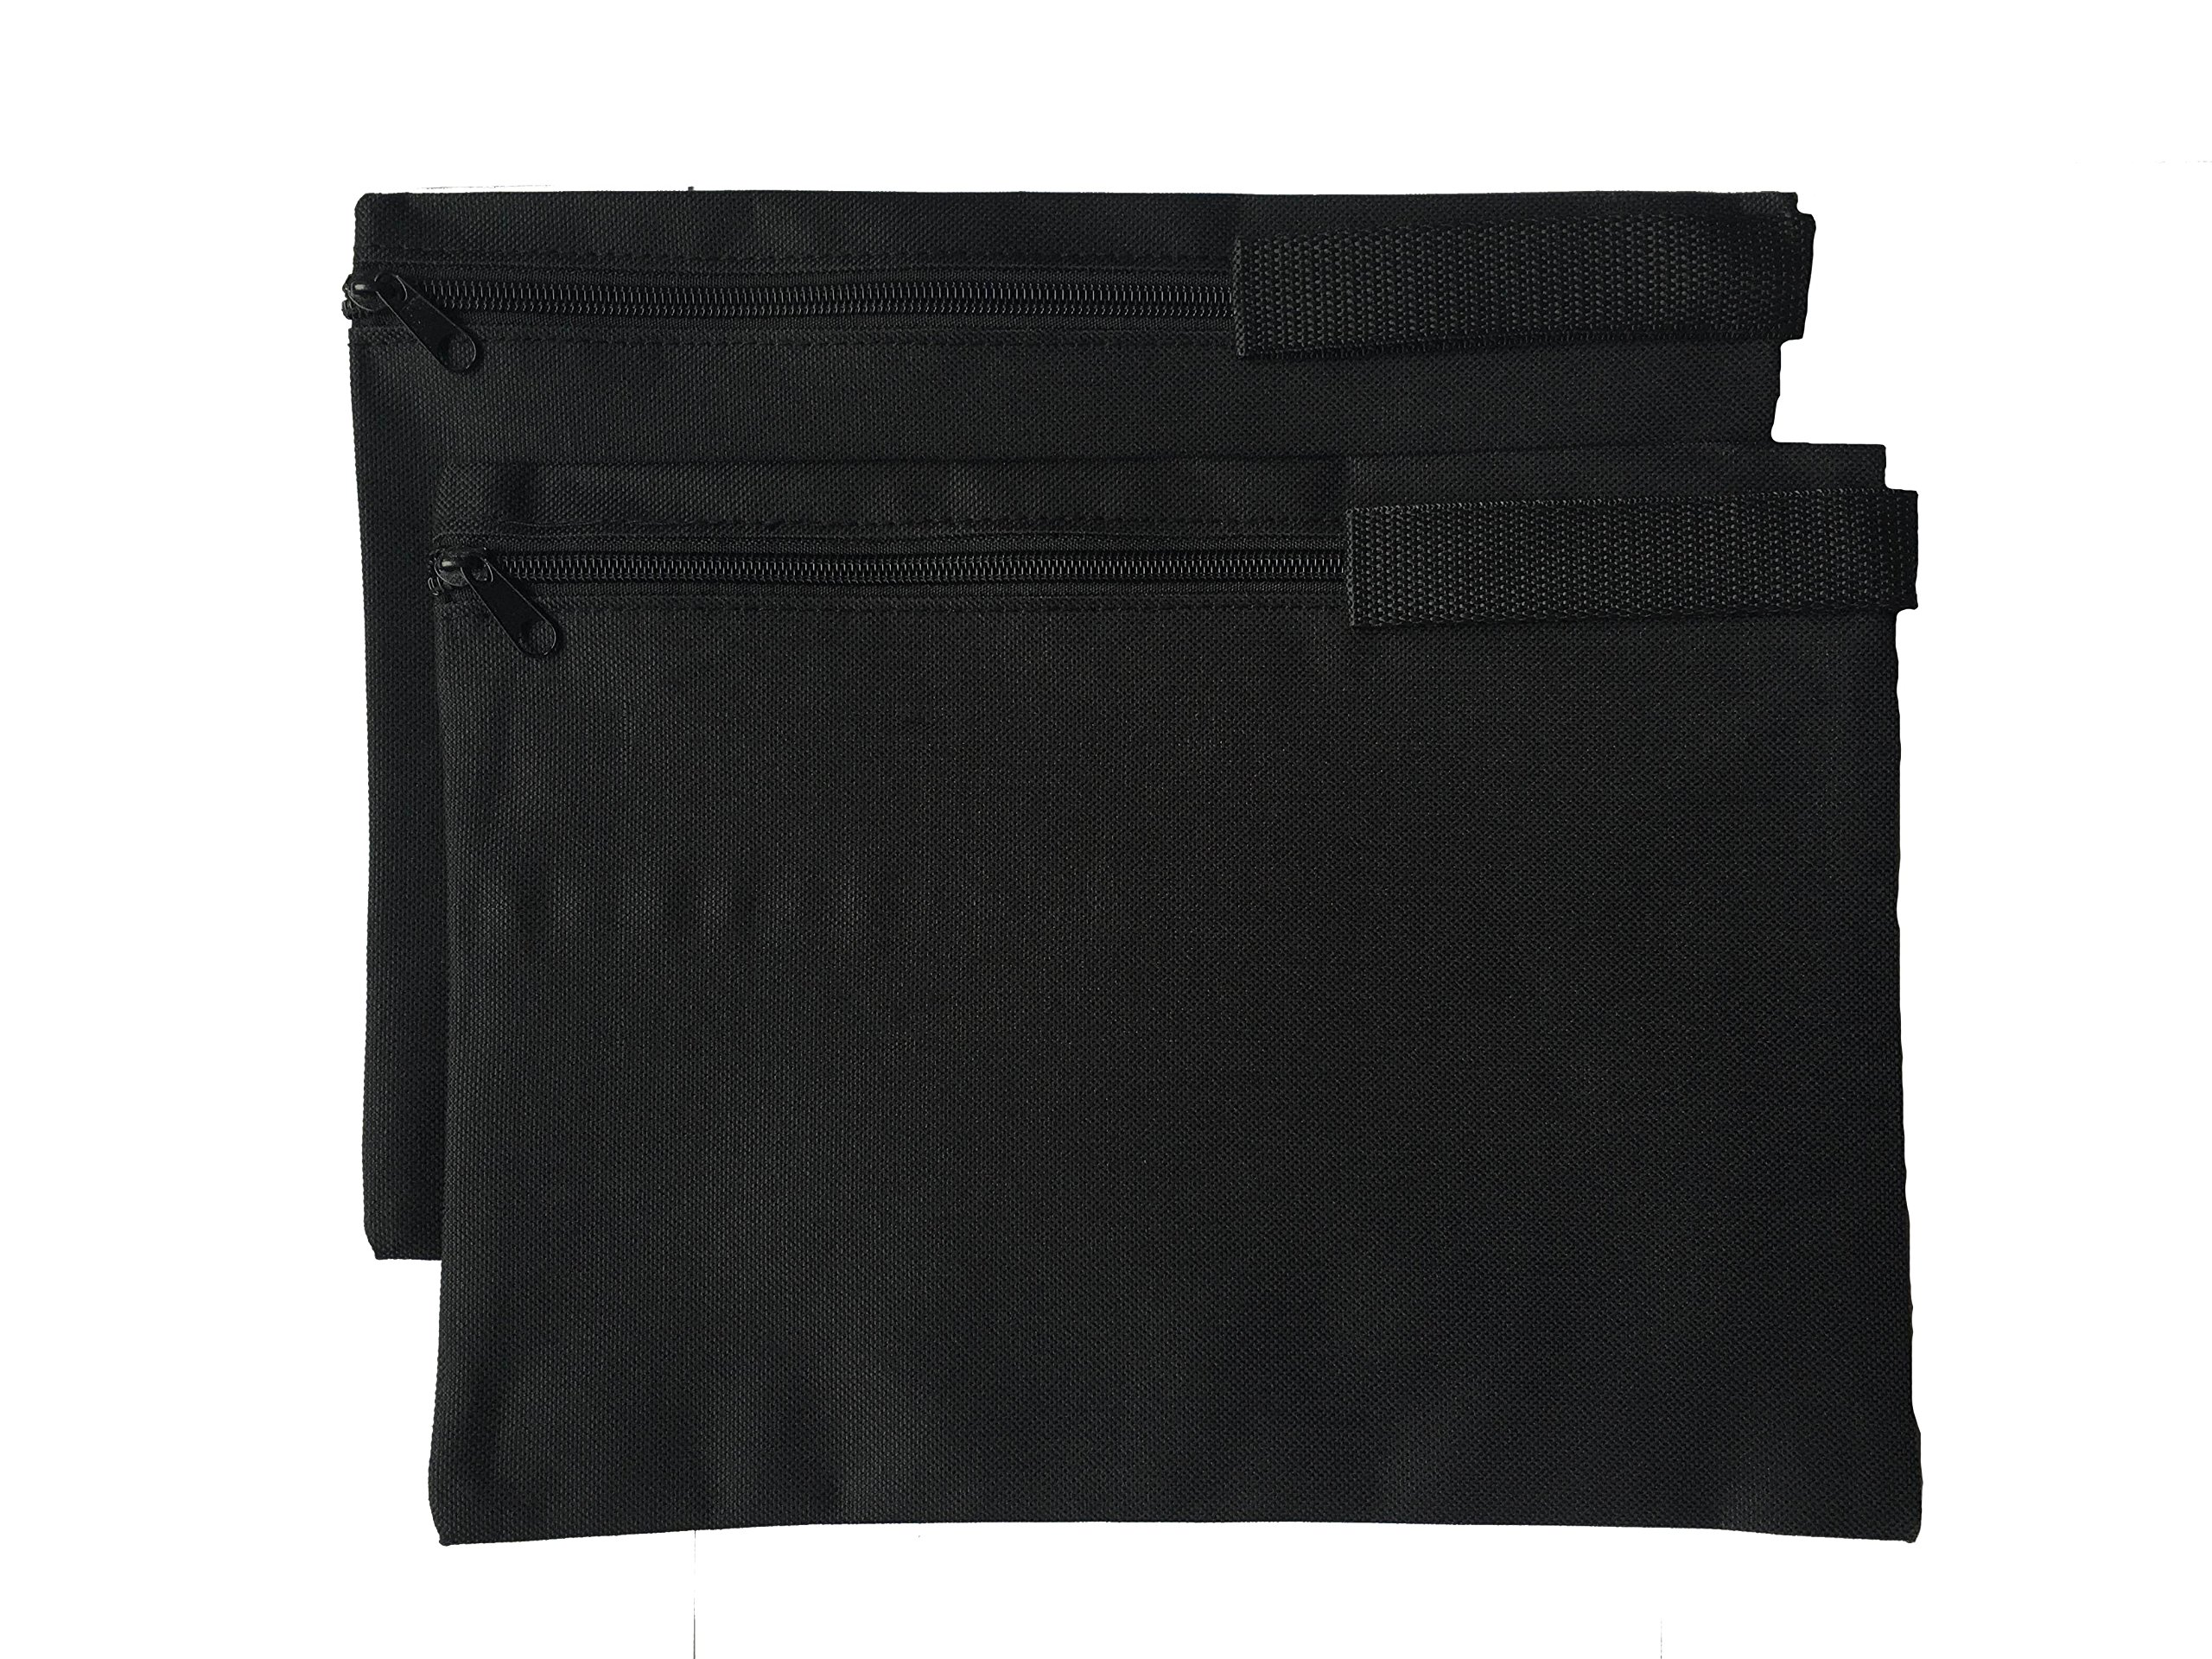 ImpecGear Document Bags, Safe Accessories Bag, Poly Cloth Value Pack of 2, (12.5'' x 9.5'') (Black)